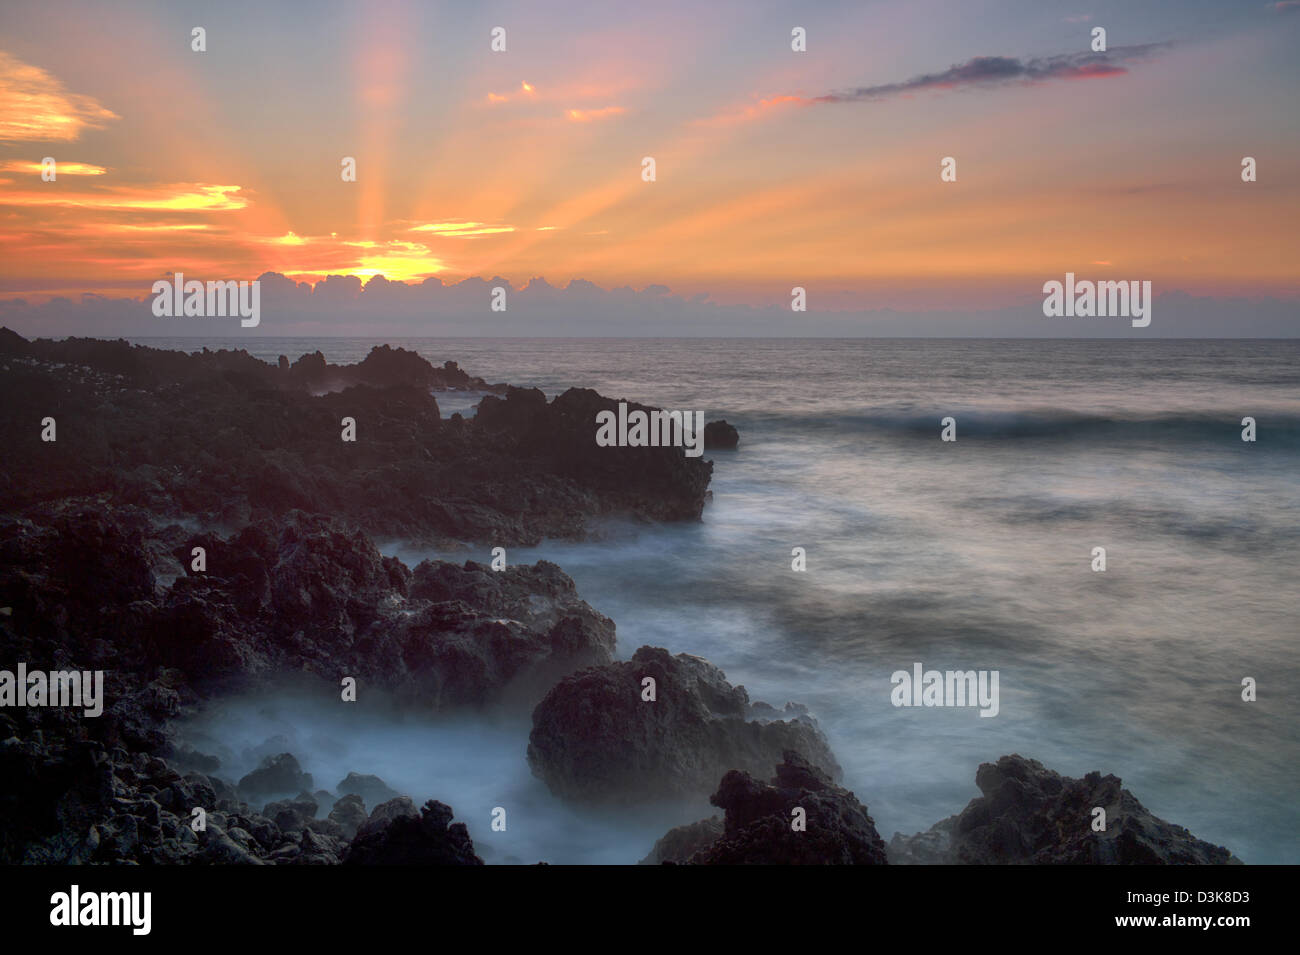 Sunset with God's rays. The Kohala Coast. The Big Island, Hawaii. Stock Photo